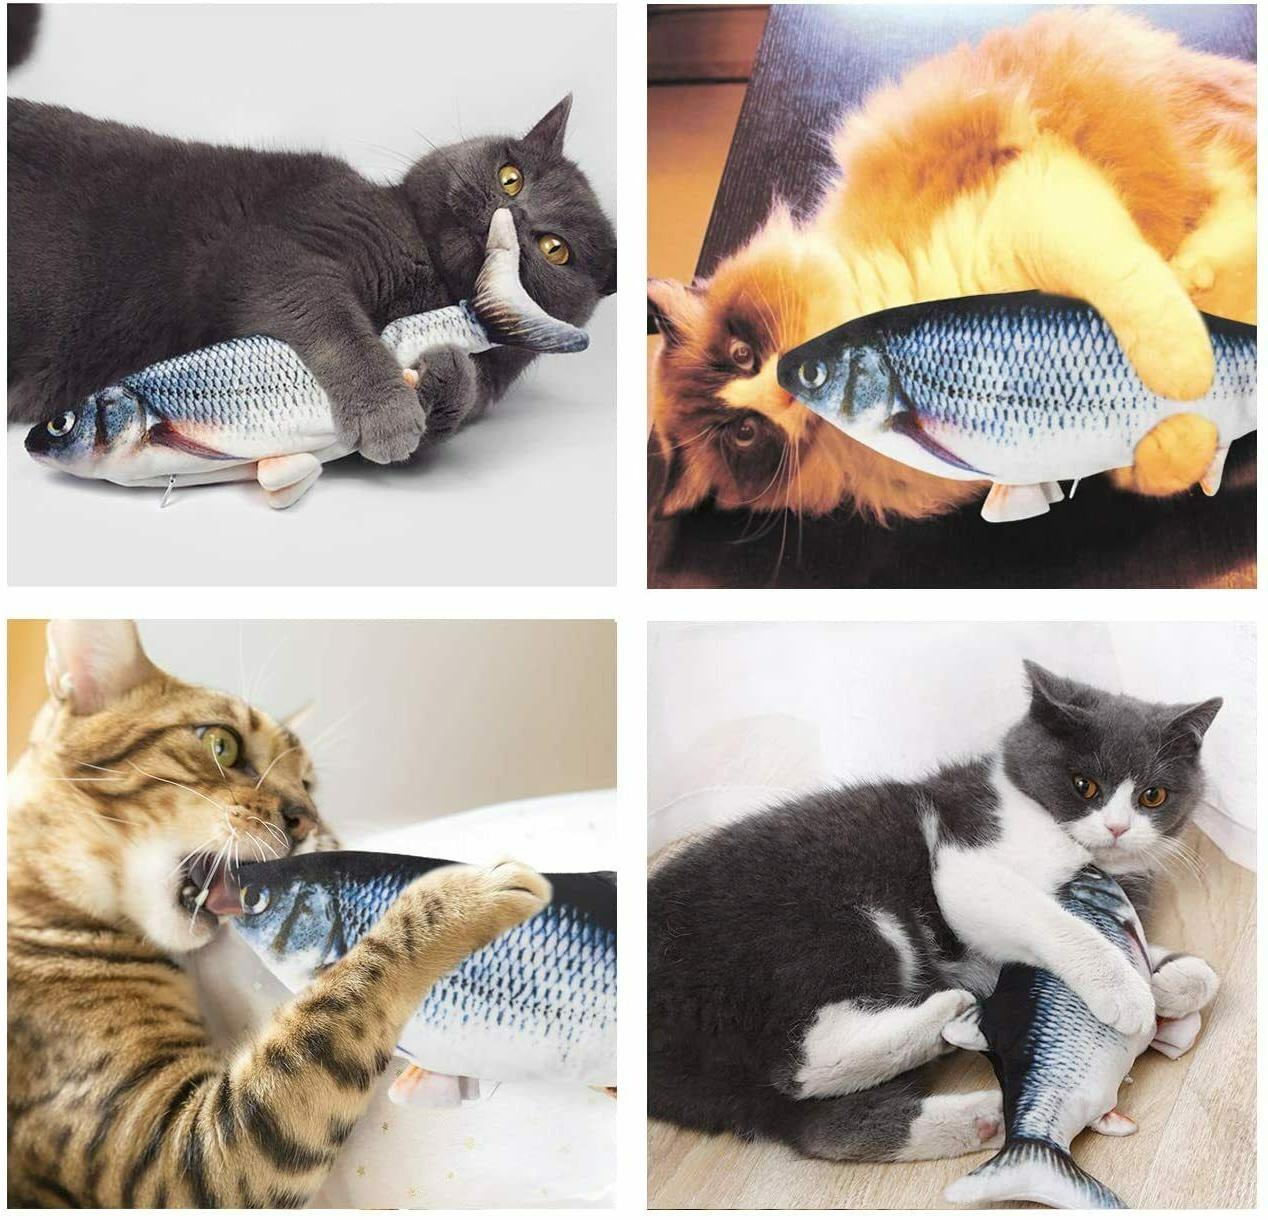 Cat Interactive Fish Realistic Flopping Fish